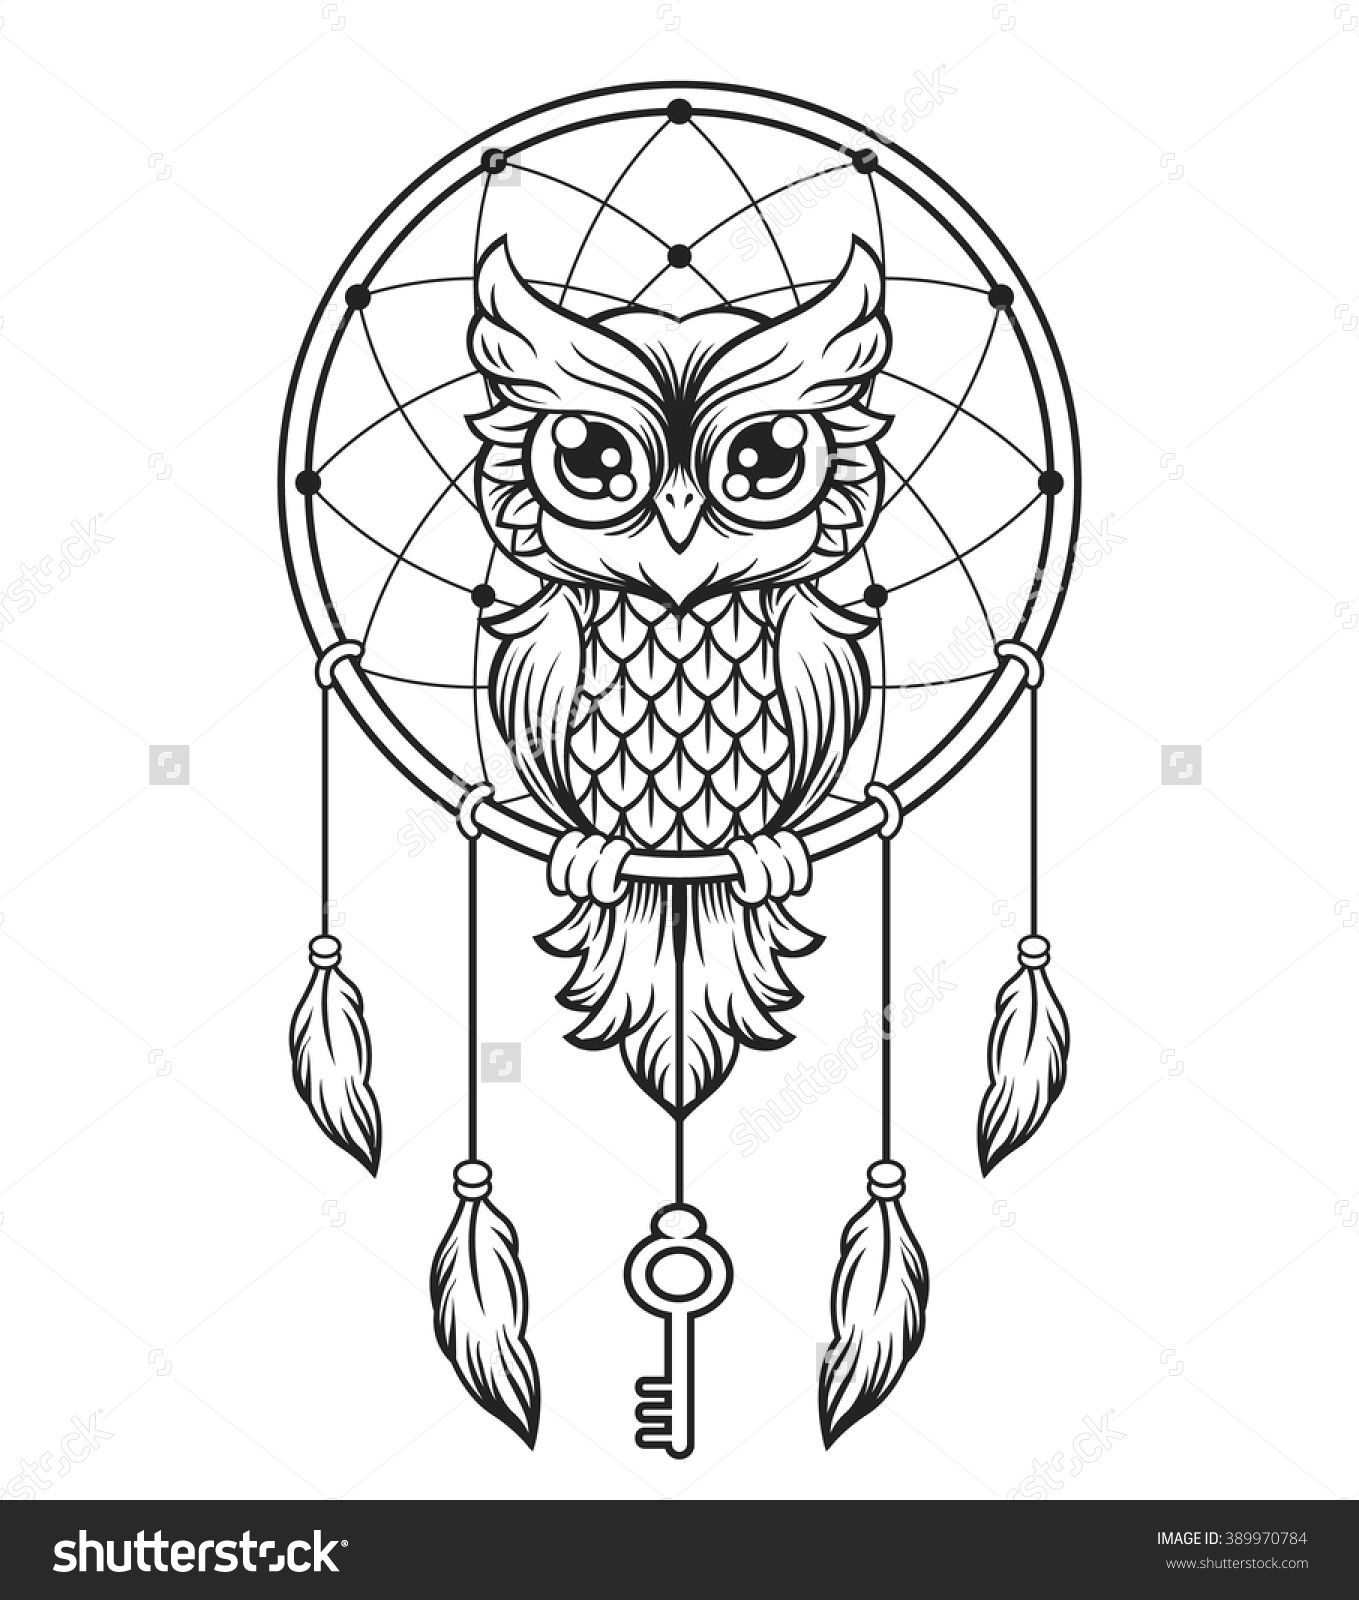 dream catcher black and white owl vector line illustration